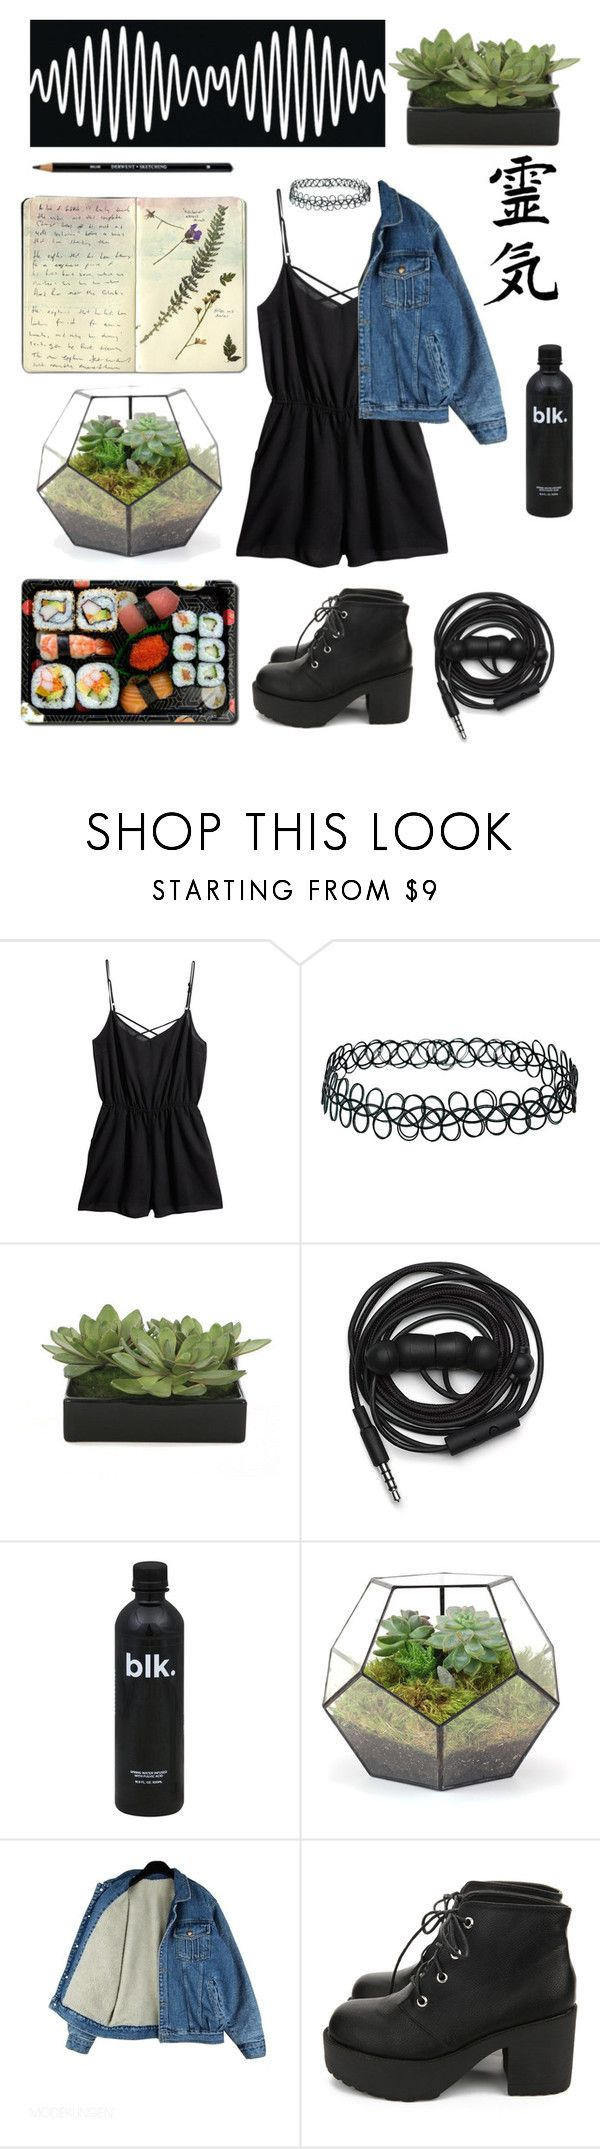 """❀burning snowflakes❀"" by venus1225 ❤ liked on Polyvore featuring H&M, Topshop, Universal, Lux-Art Silks, Jura, Urbanears, Moleskine, B-Side and Nanda Home"